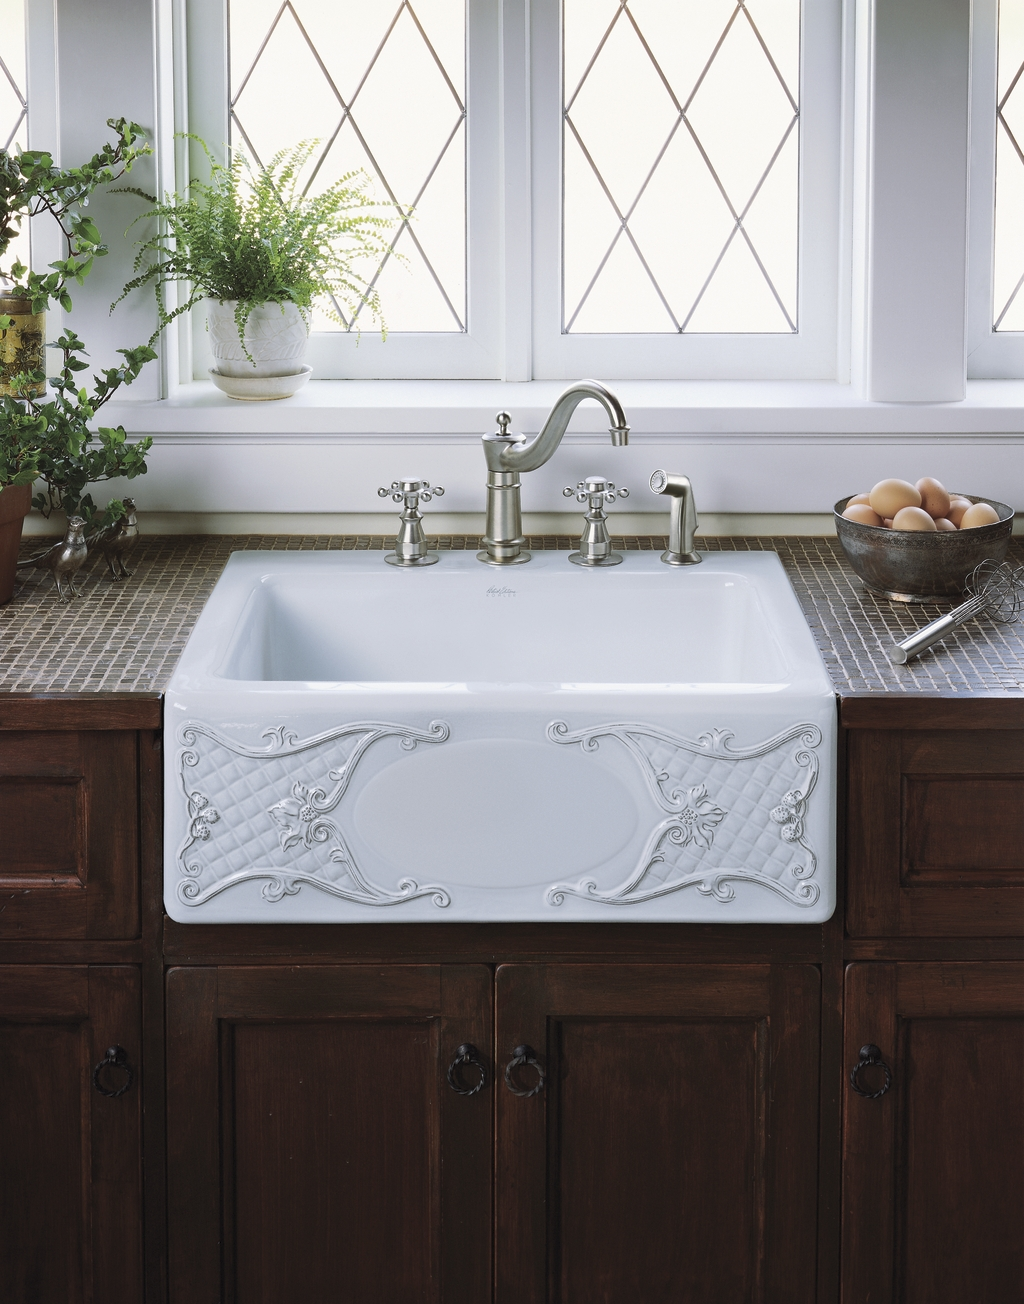 Porcelain Kitchen Sinks Australia